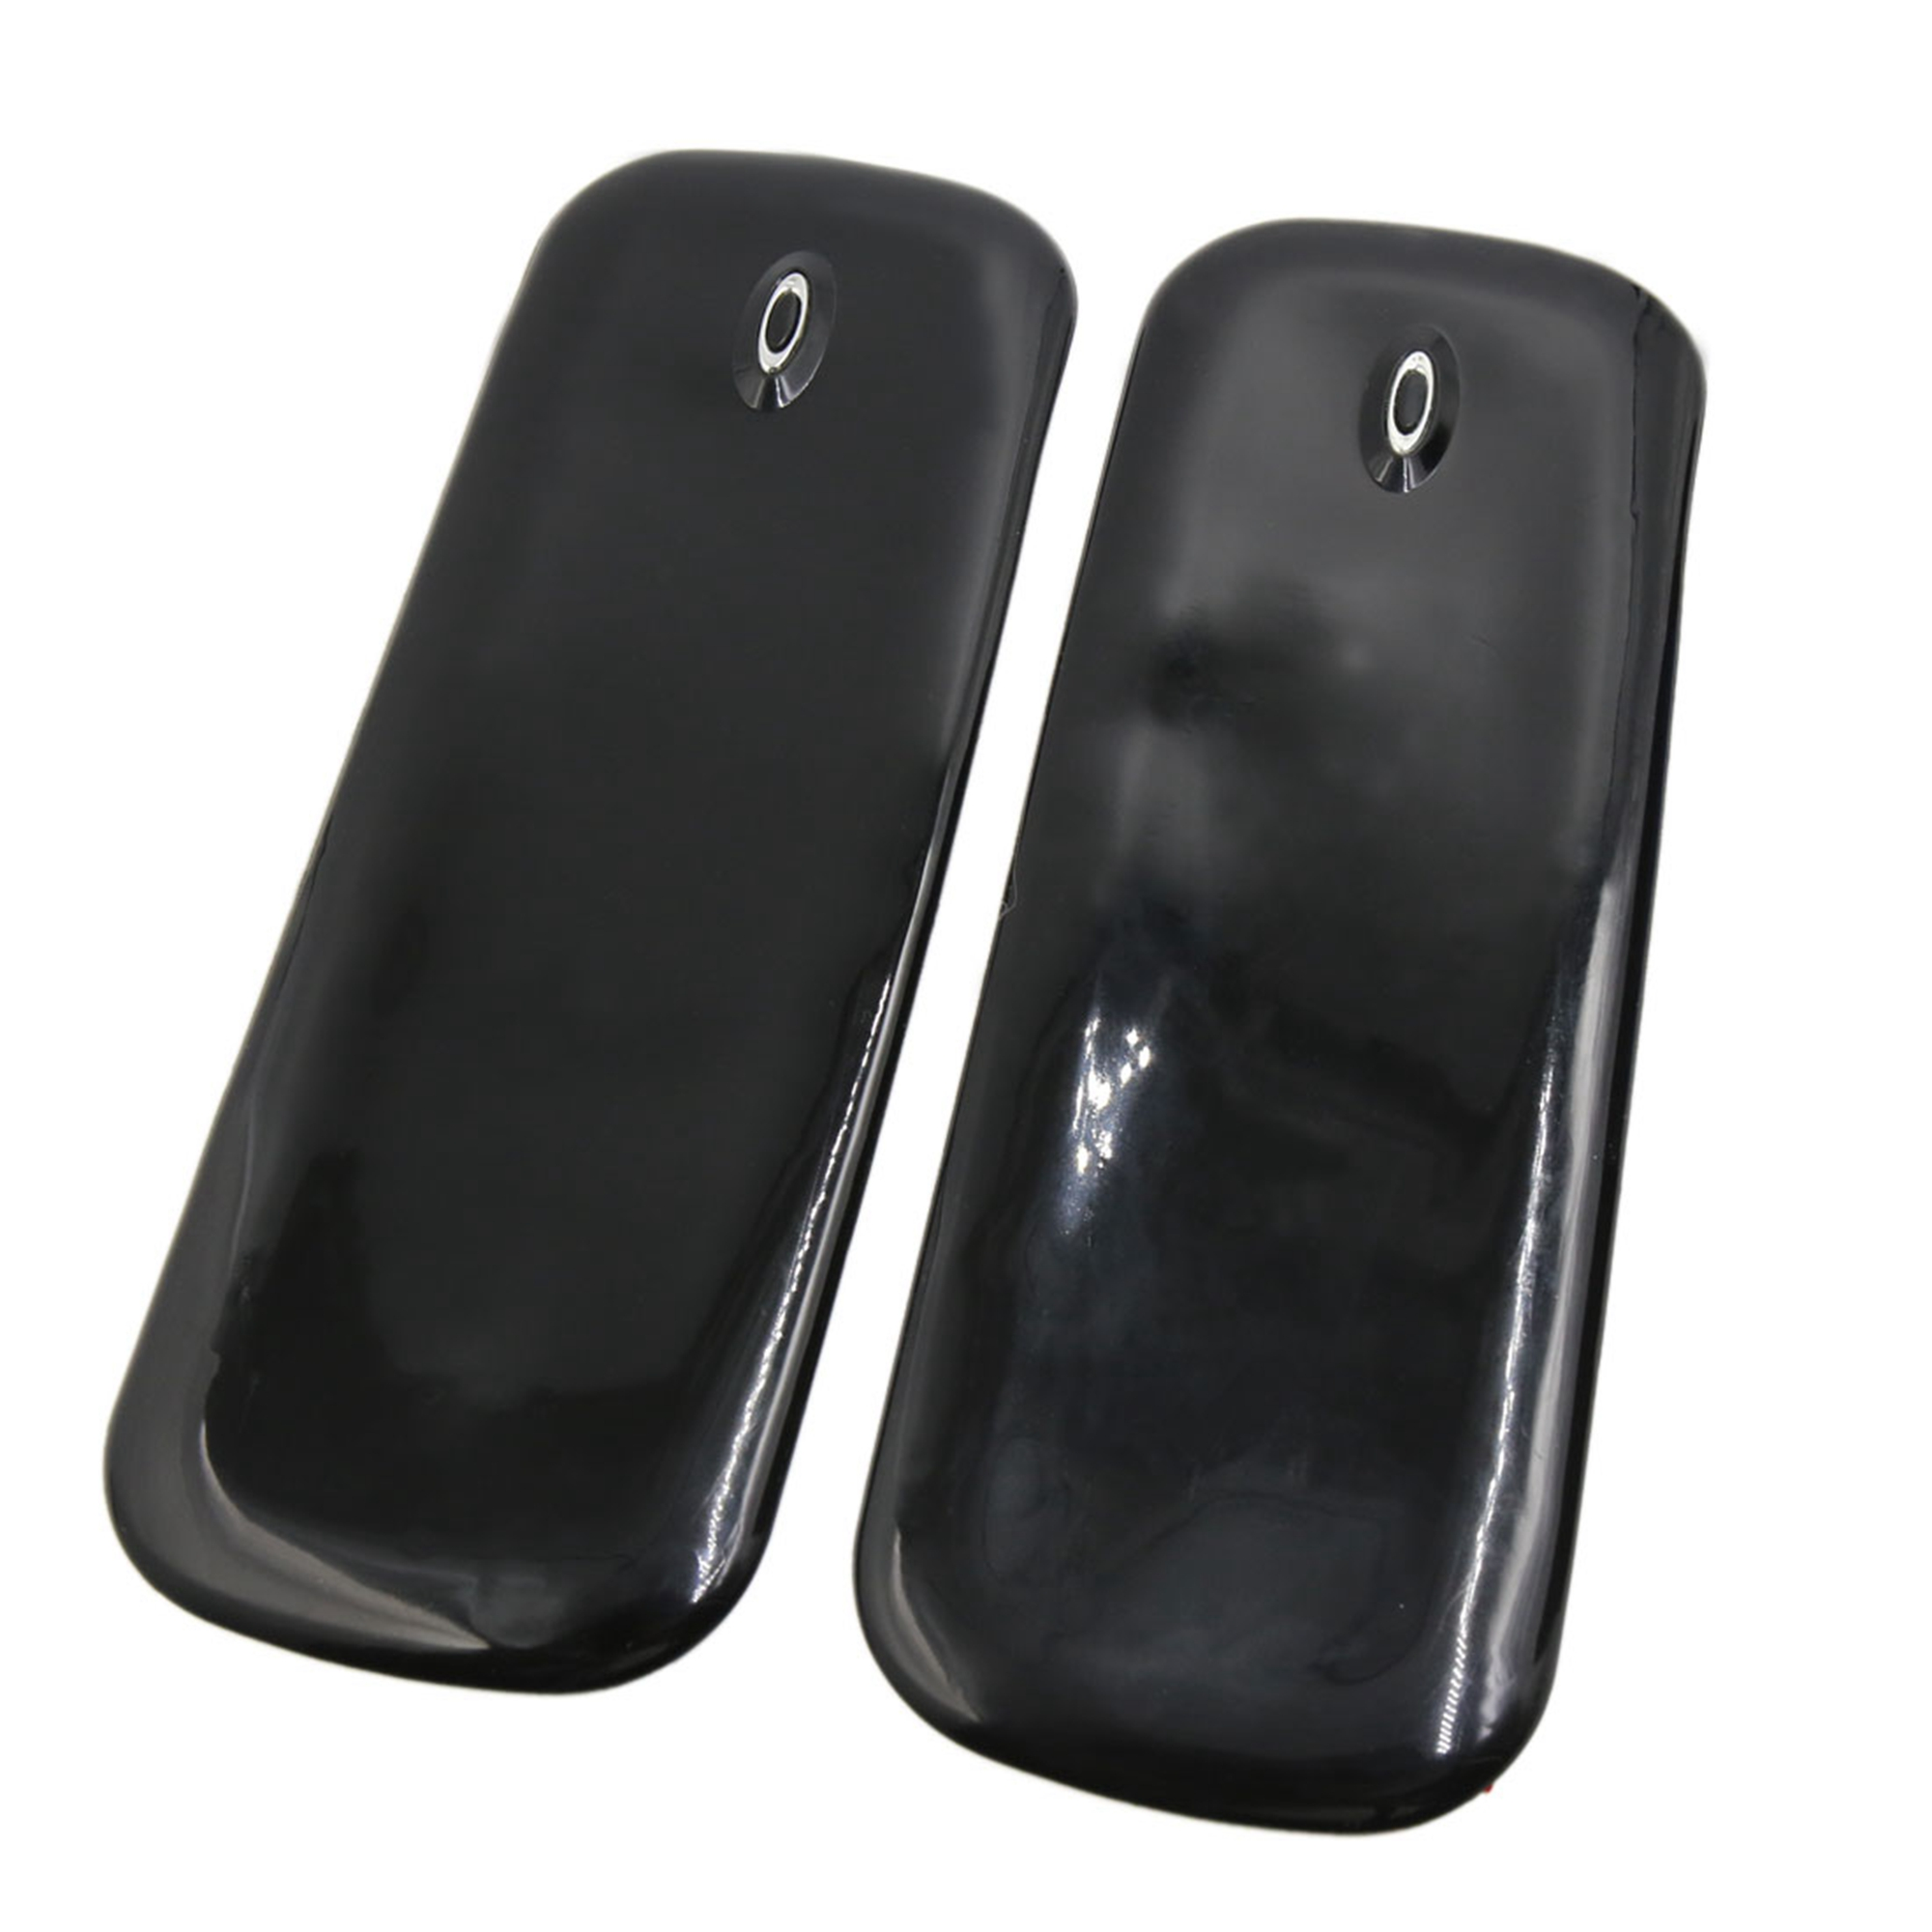 2 Pcs Black Rubber Car Front Rear Bumper Protector Corner Guard Scratch Sticker